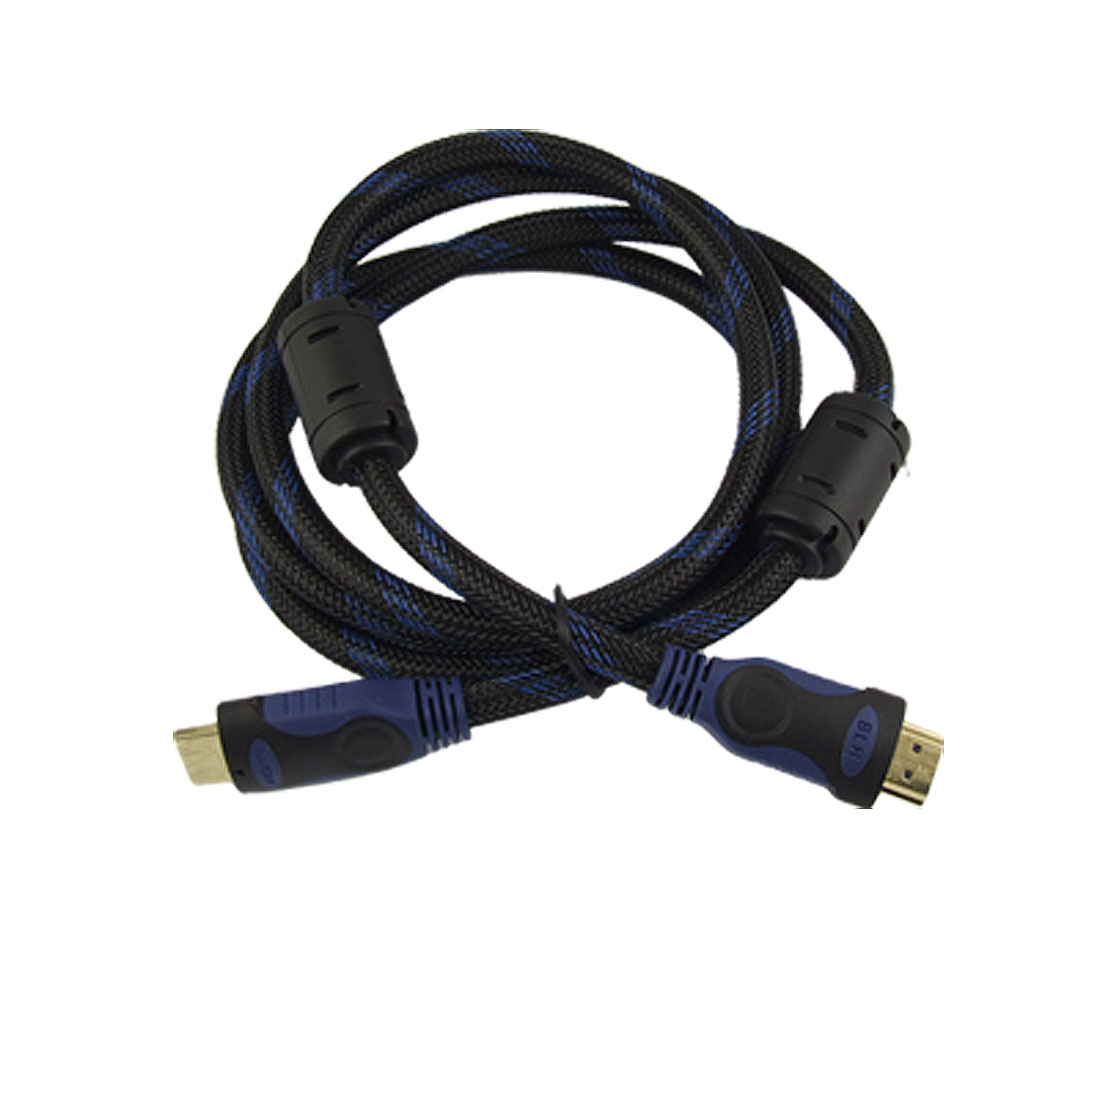 HDMI 19 Pins Male to Male Connector Cable 1.5M Black Blue for HDTV